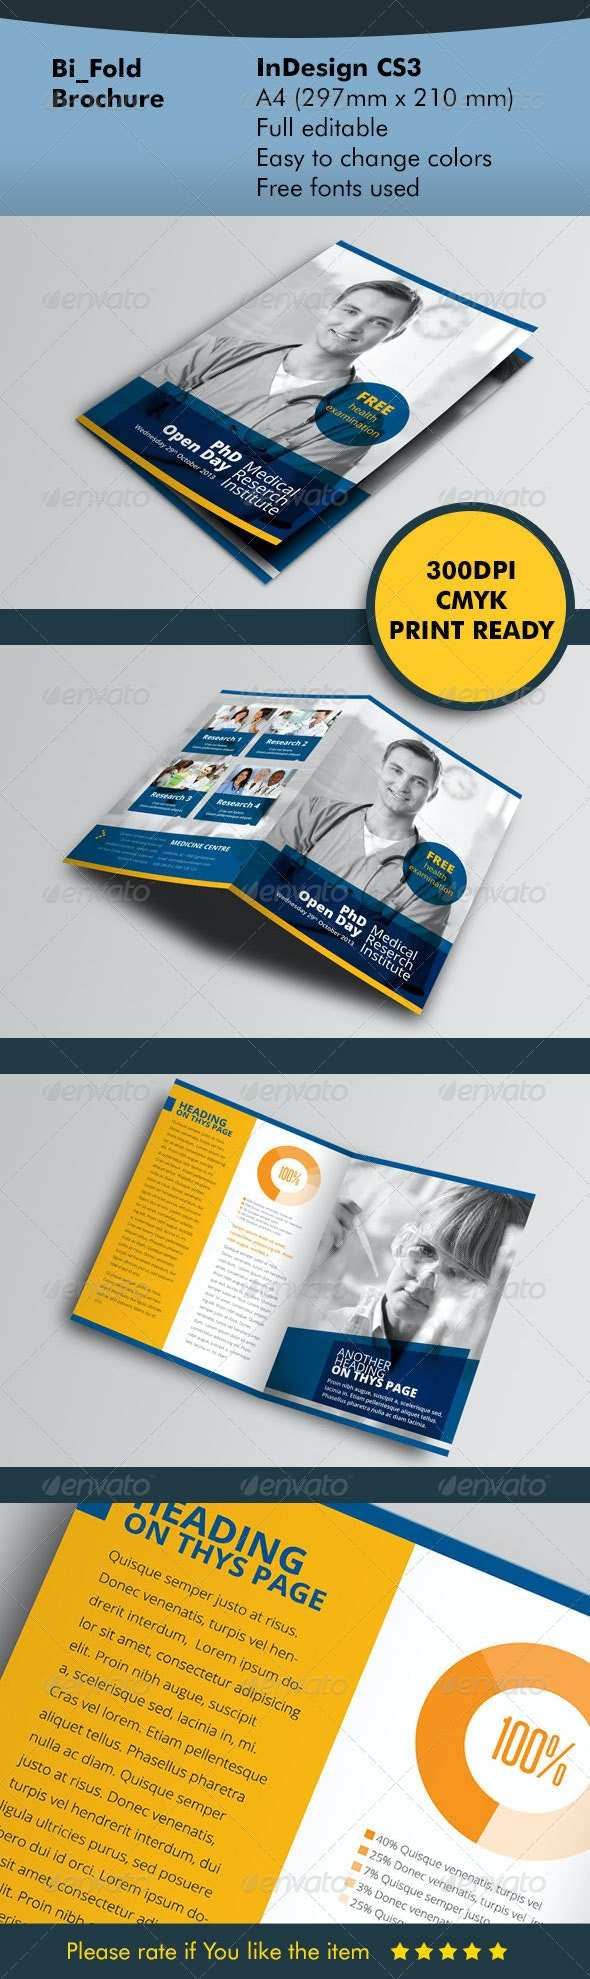 BiFold Brochure Blue - Informational Brochures